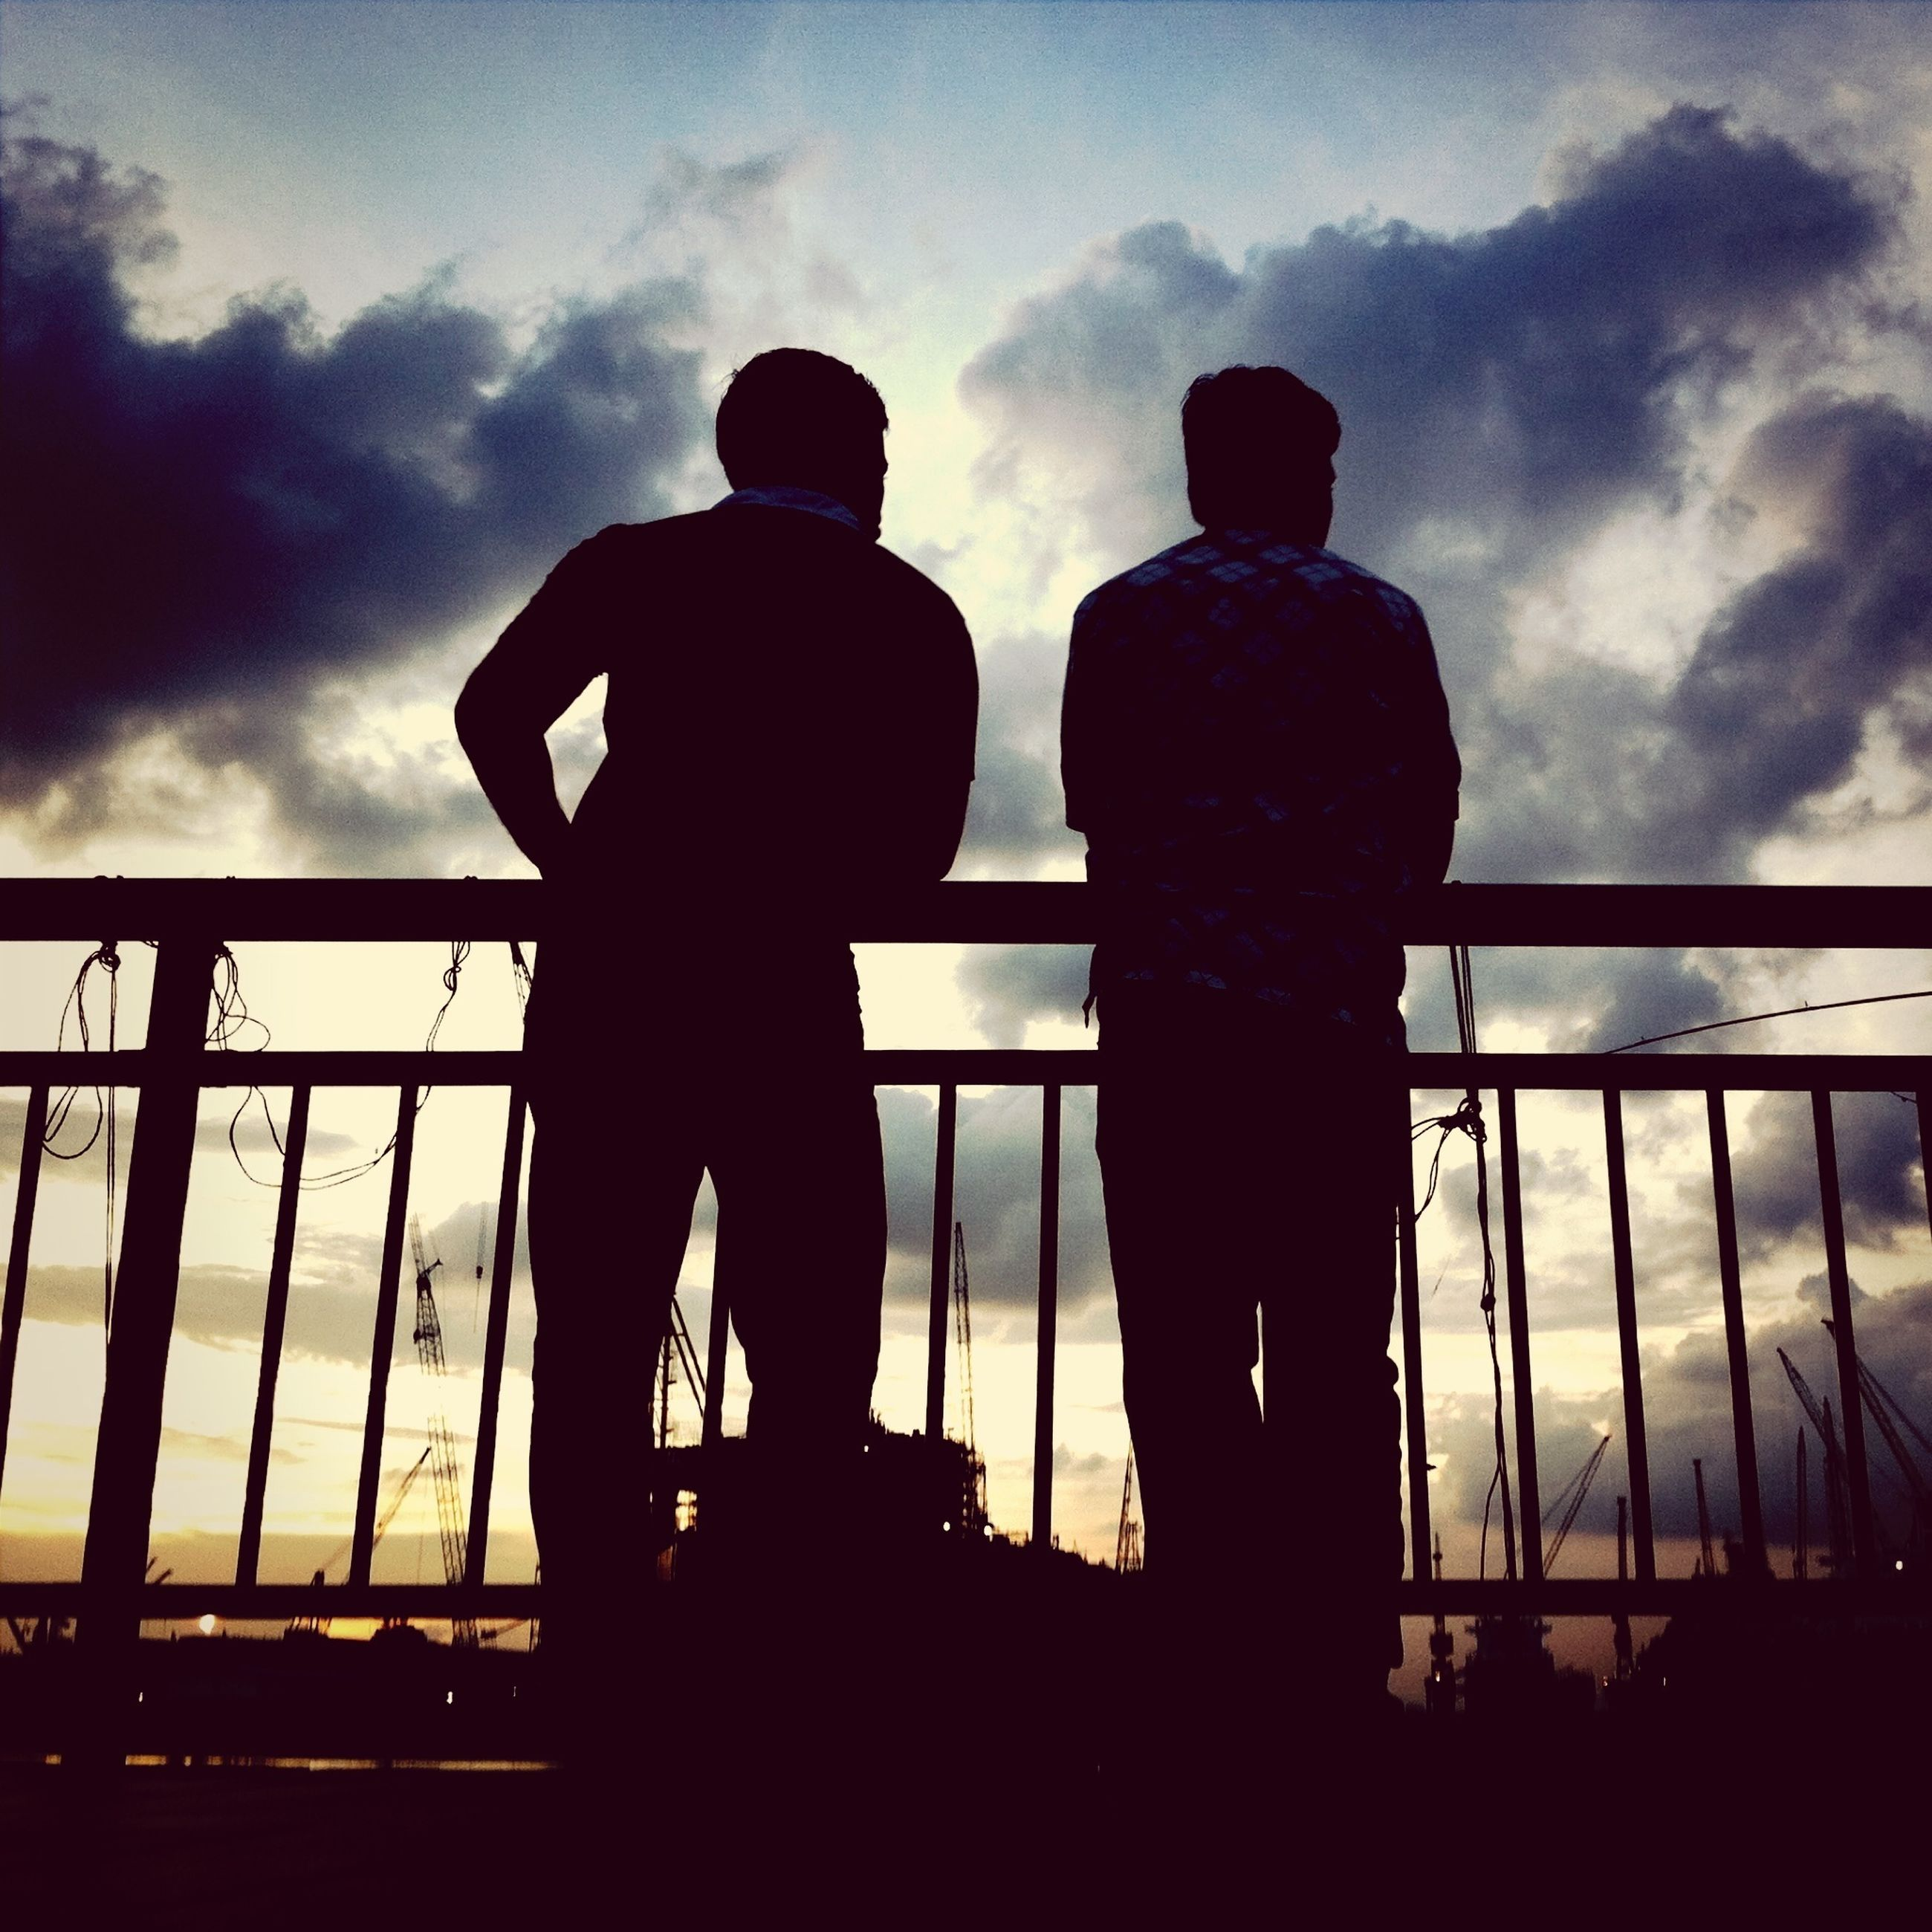 silhouette, sky, cloud - sky, men, standing, cloudy, low angle view, cloud, rear view, lifestyles, railing, leisure activity, person, built structure, outdoors, togetherness, architecture